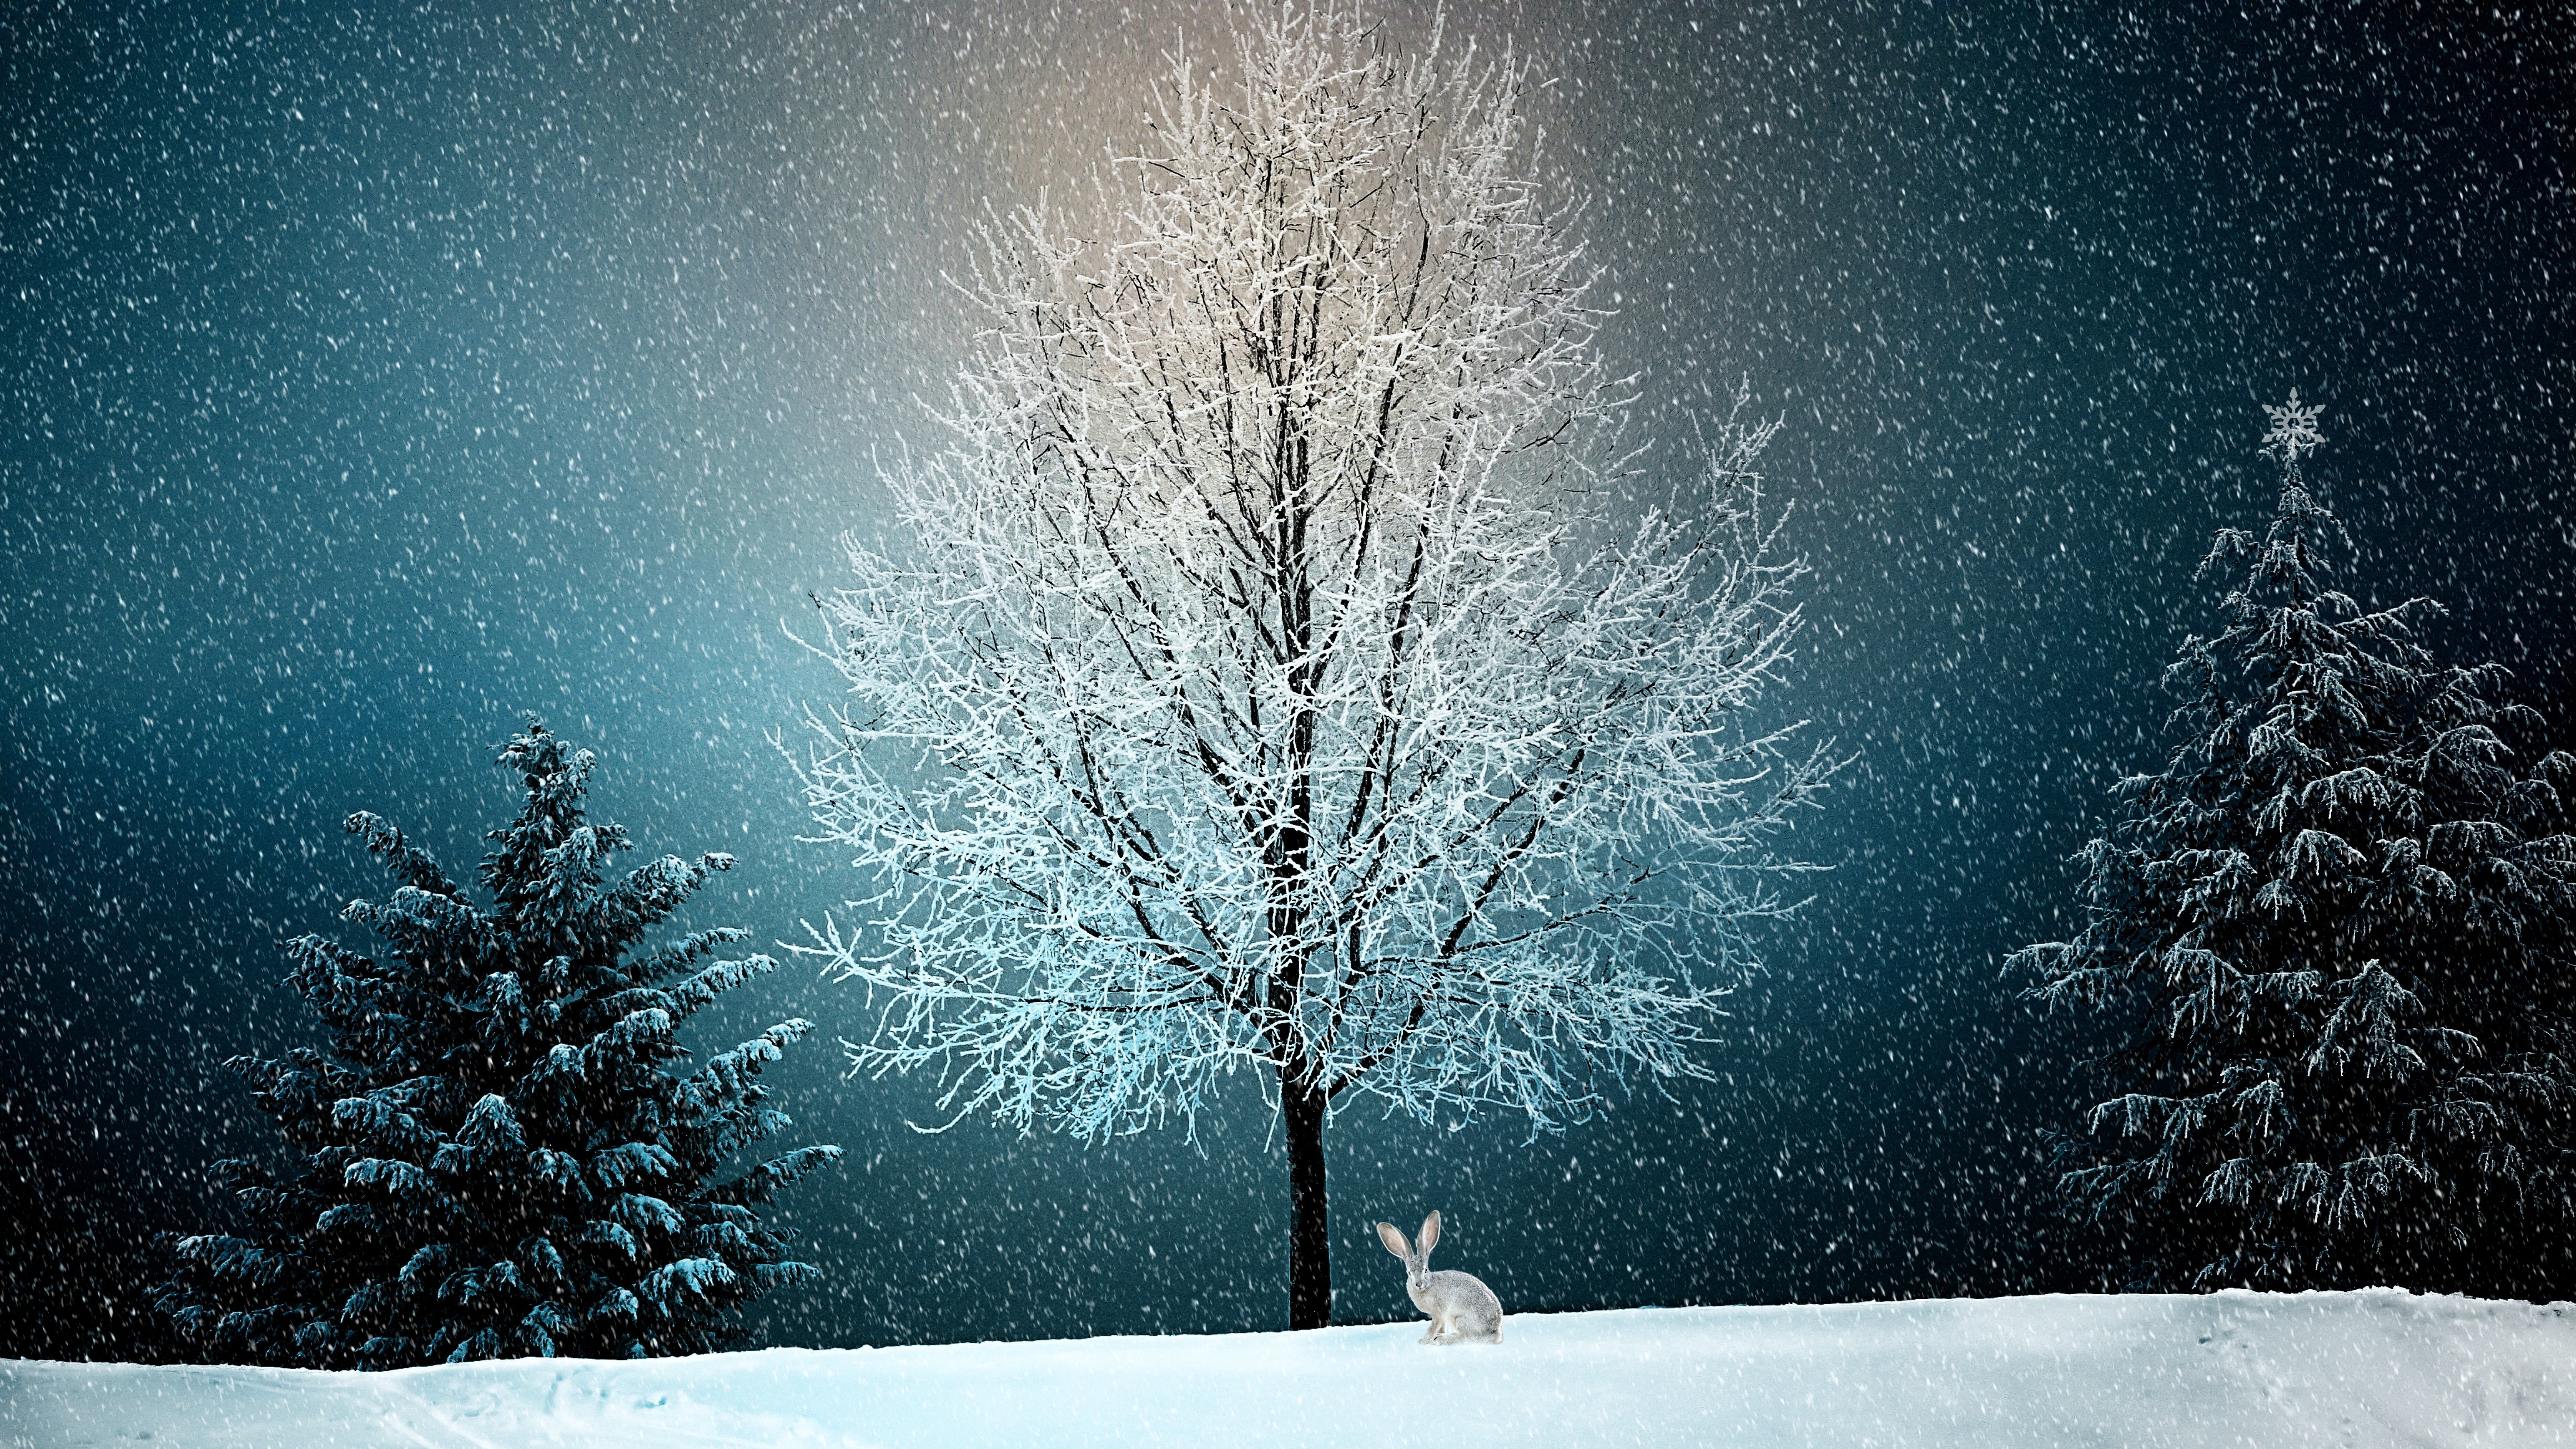 Winter Snow Tree 5k Hd Nature 4k Wallpapers Images